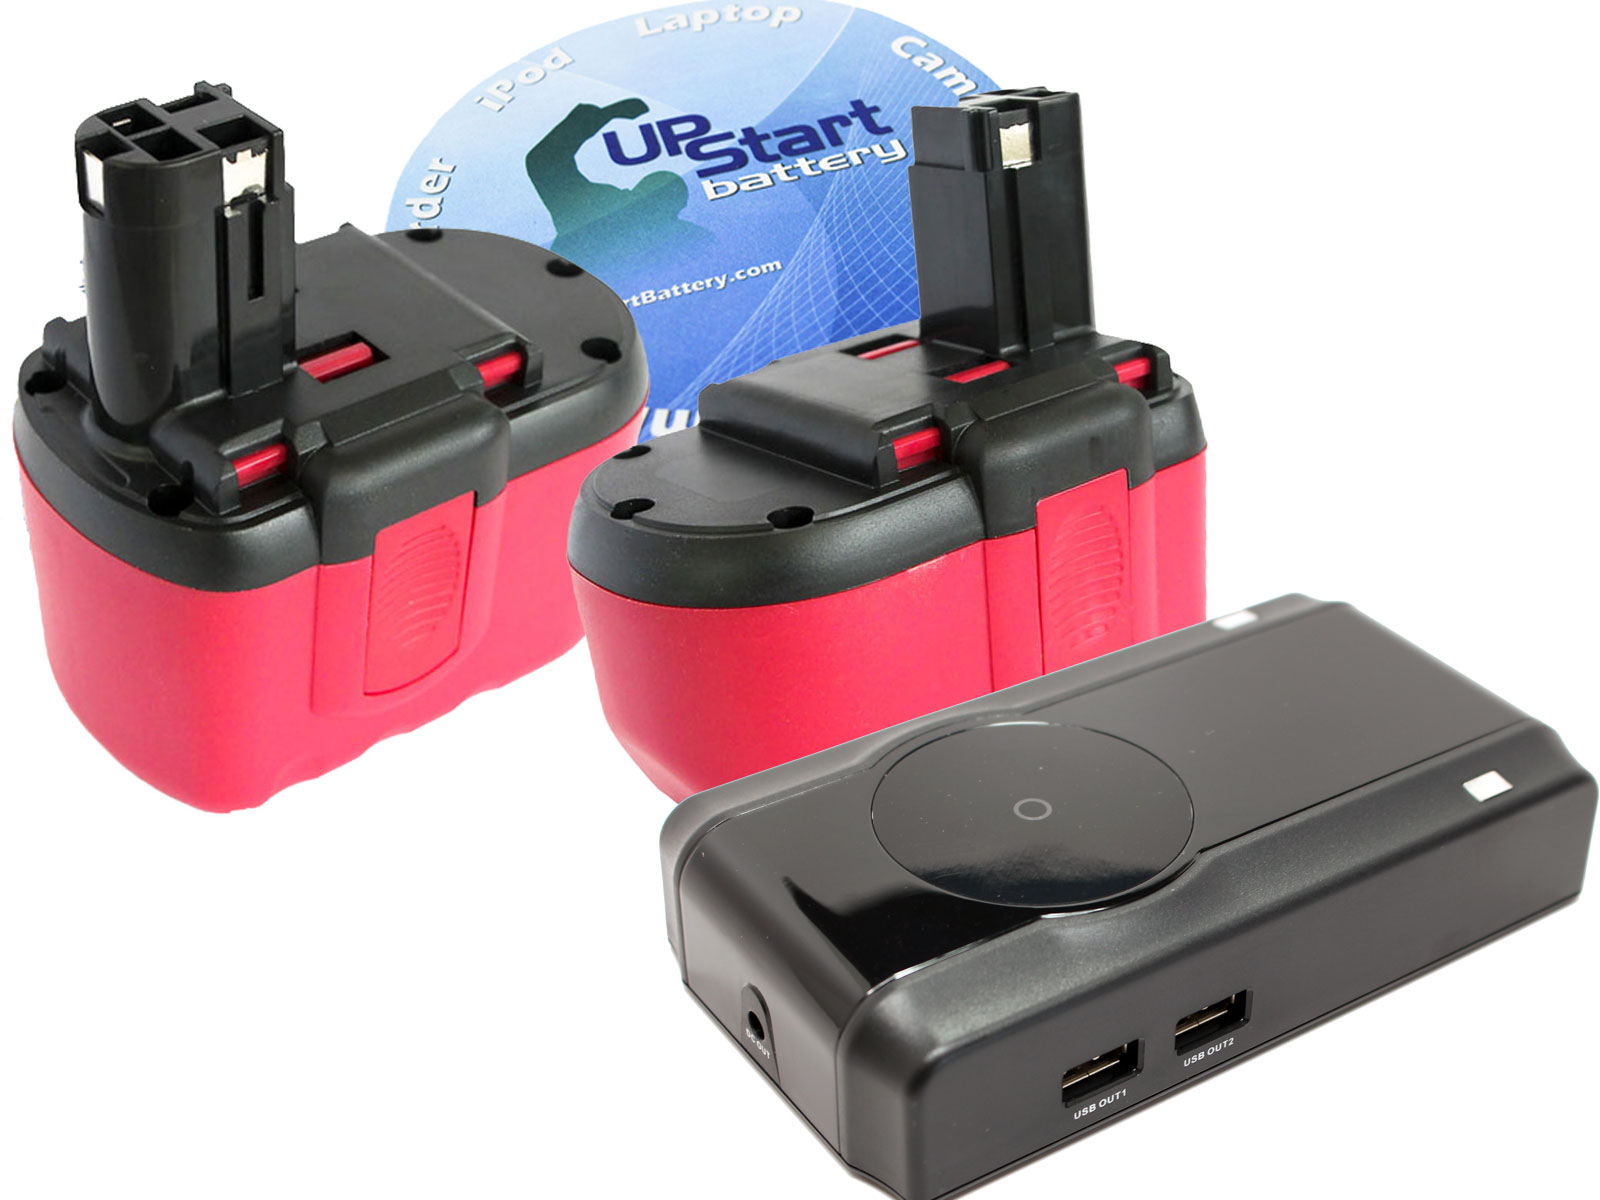 UpStart Battery 2-Pack Bosch 164524 Battery + Charger - Replacement Bosch 24V Battery and Charger (1300mAh, NICD)